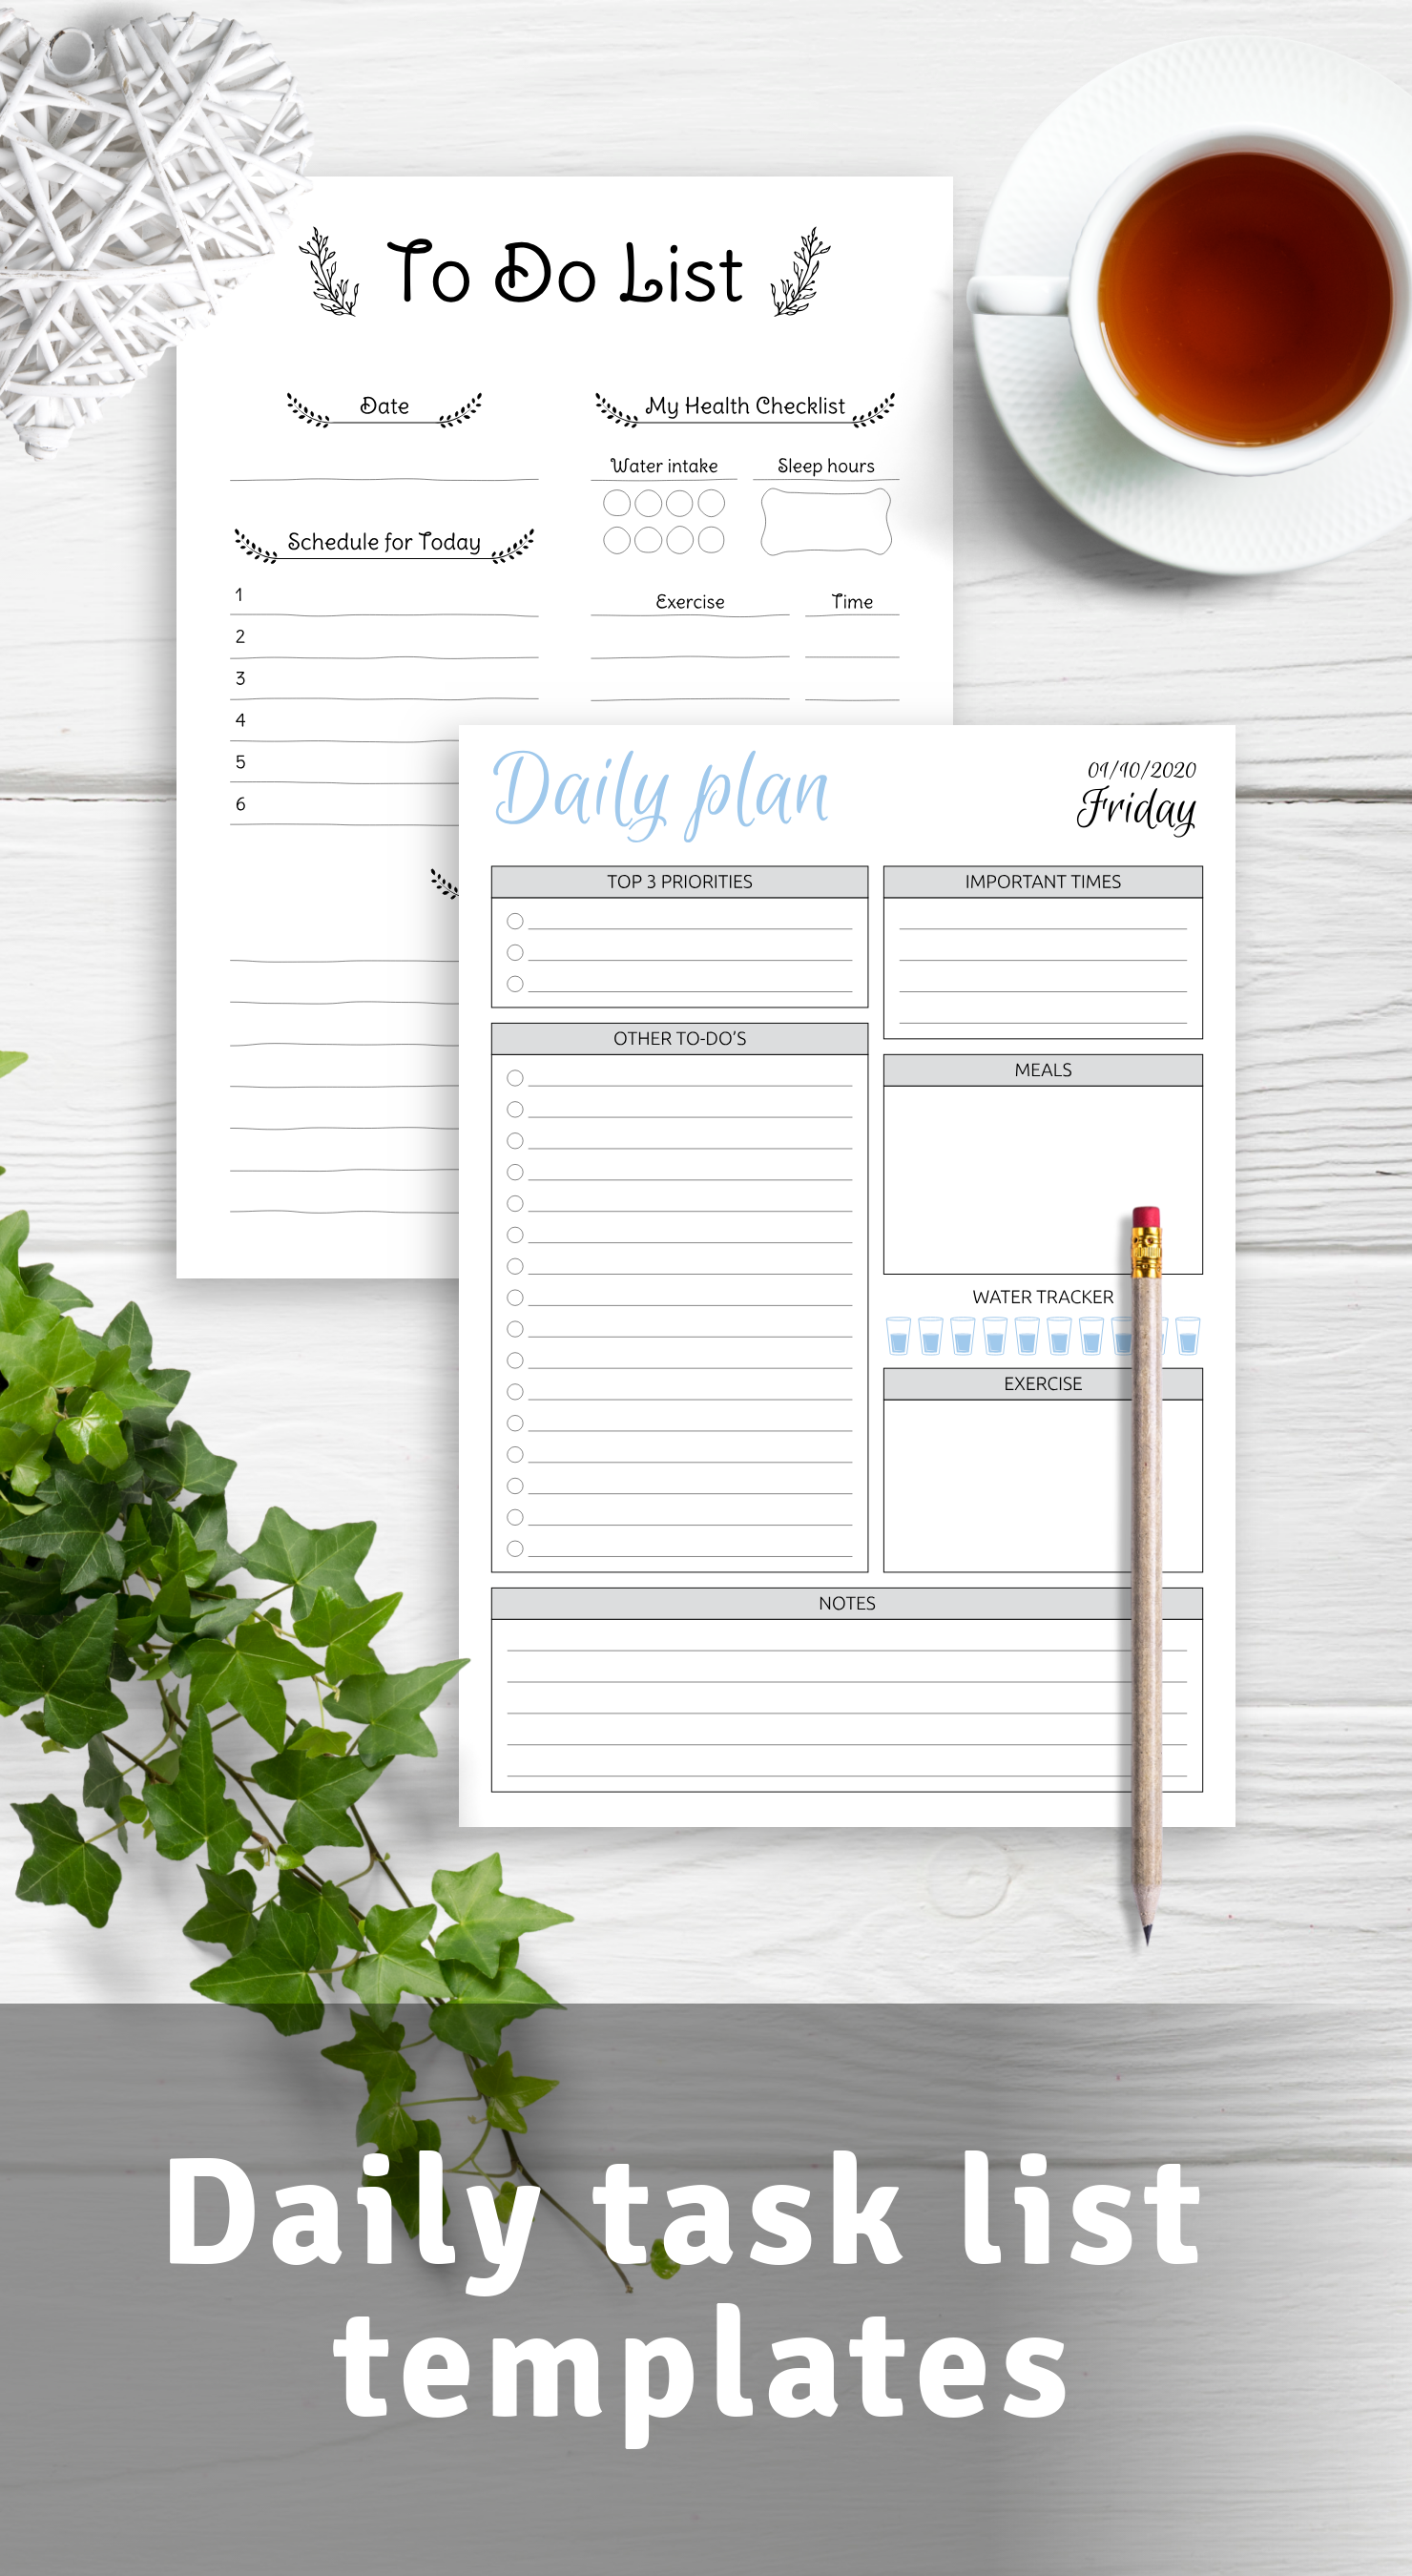 Printable daily task list templates